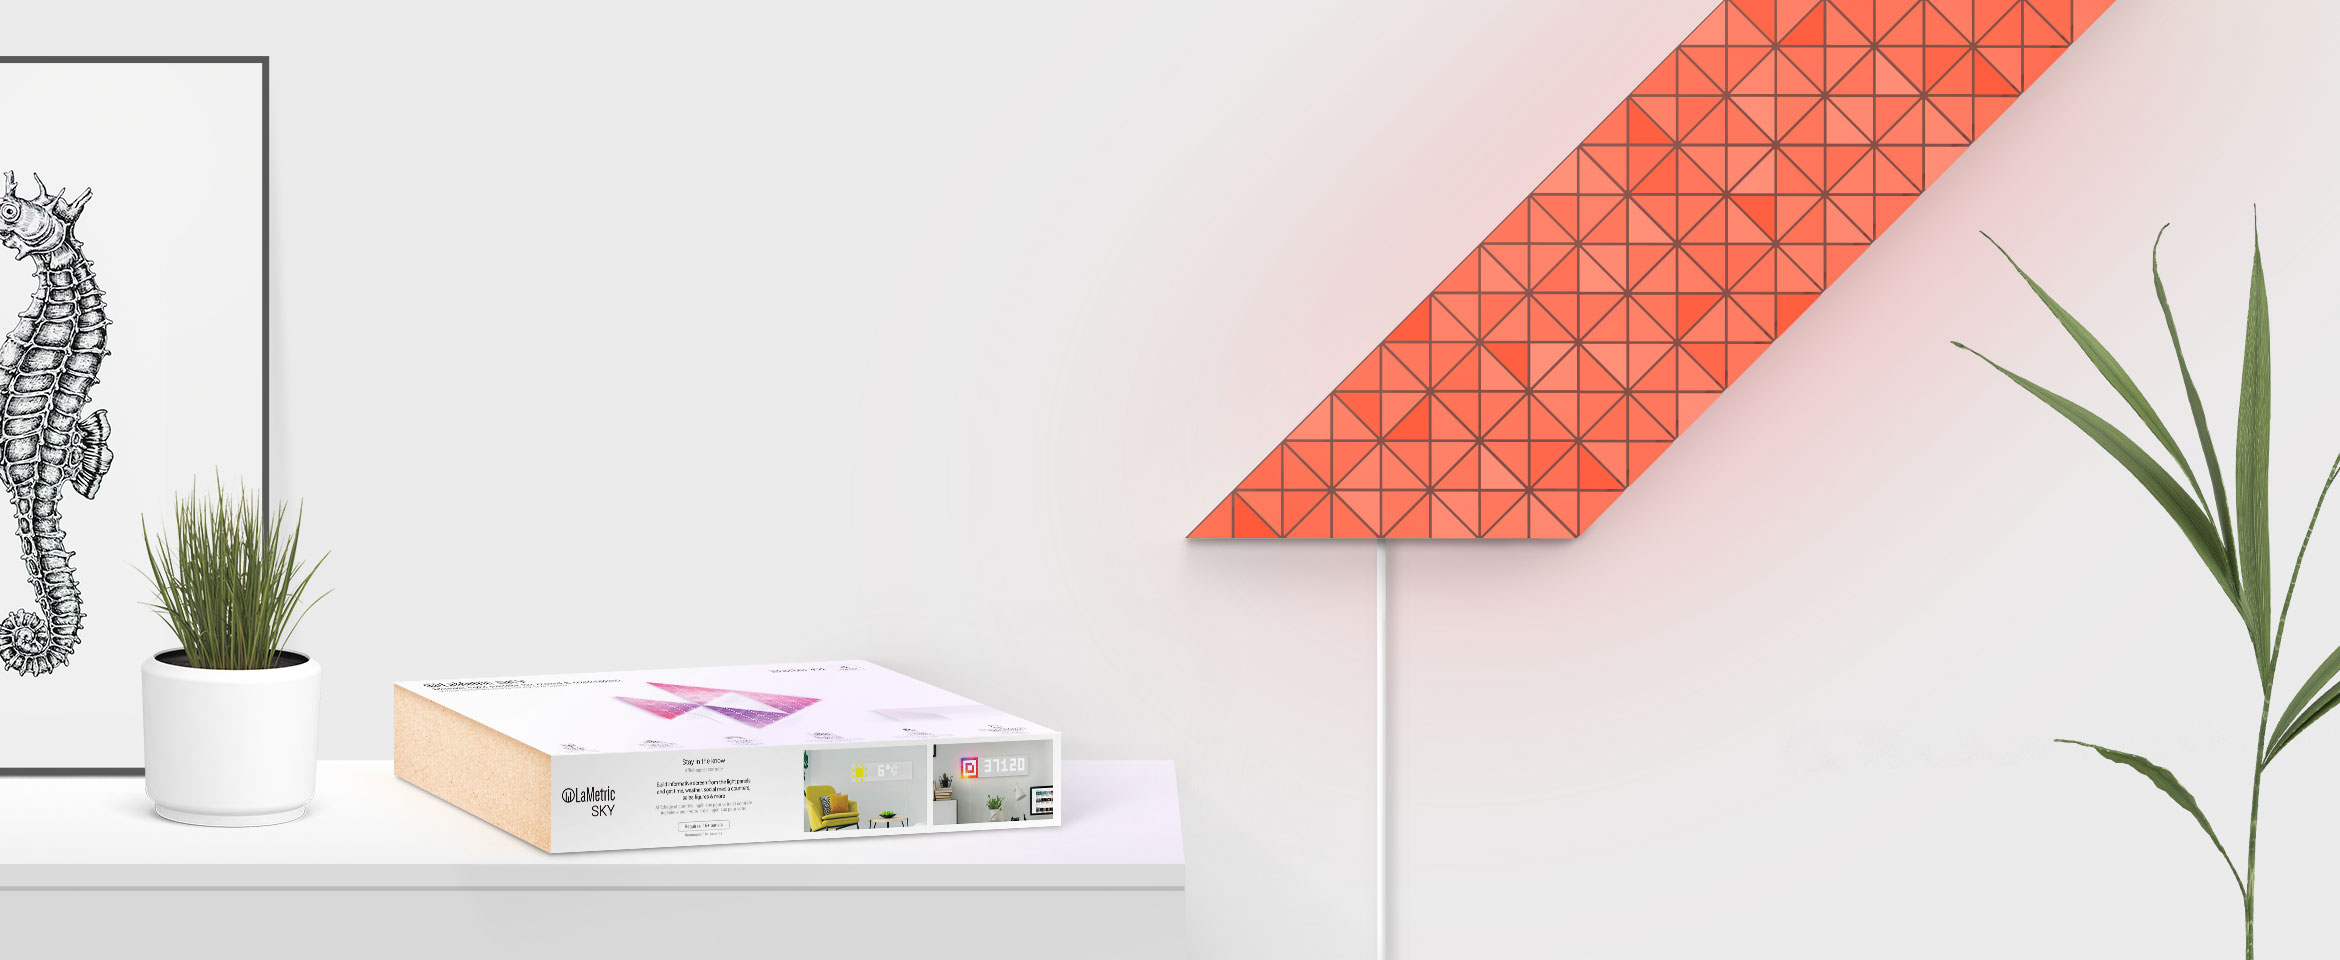 LaMetric SKY smart light surfaces express that the product works out of the box